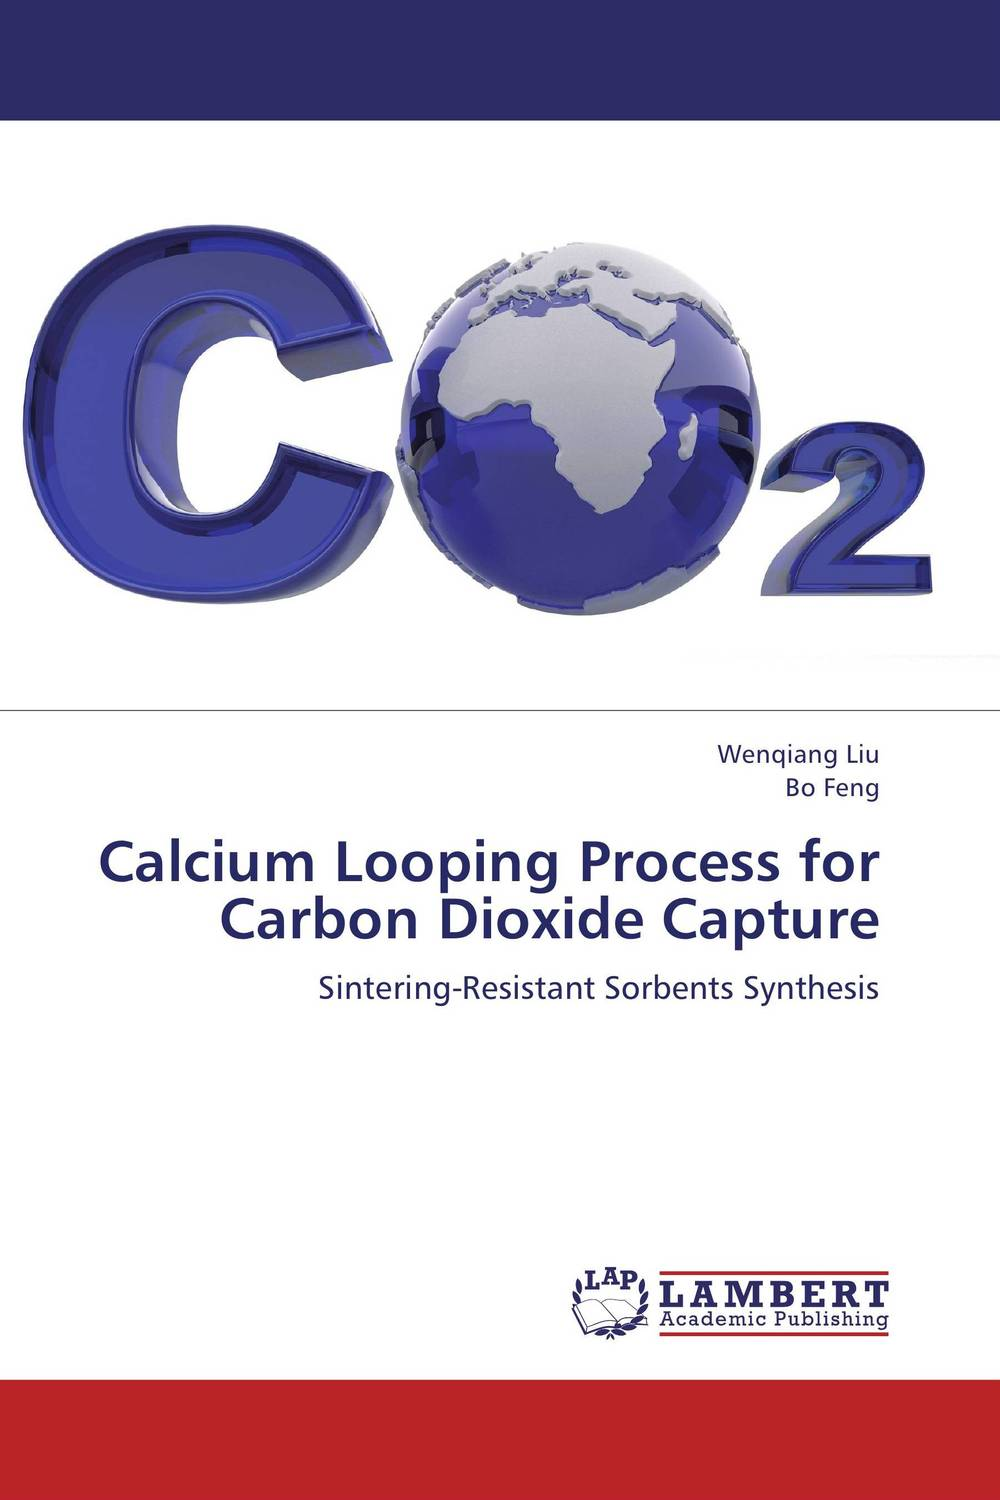 Calcium Looping Process for Carbon Dioxide Capture evaluation of carbon capture and storage as a best available technique